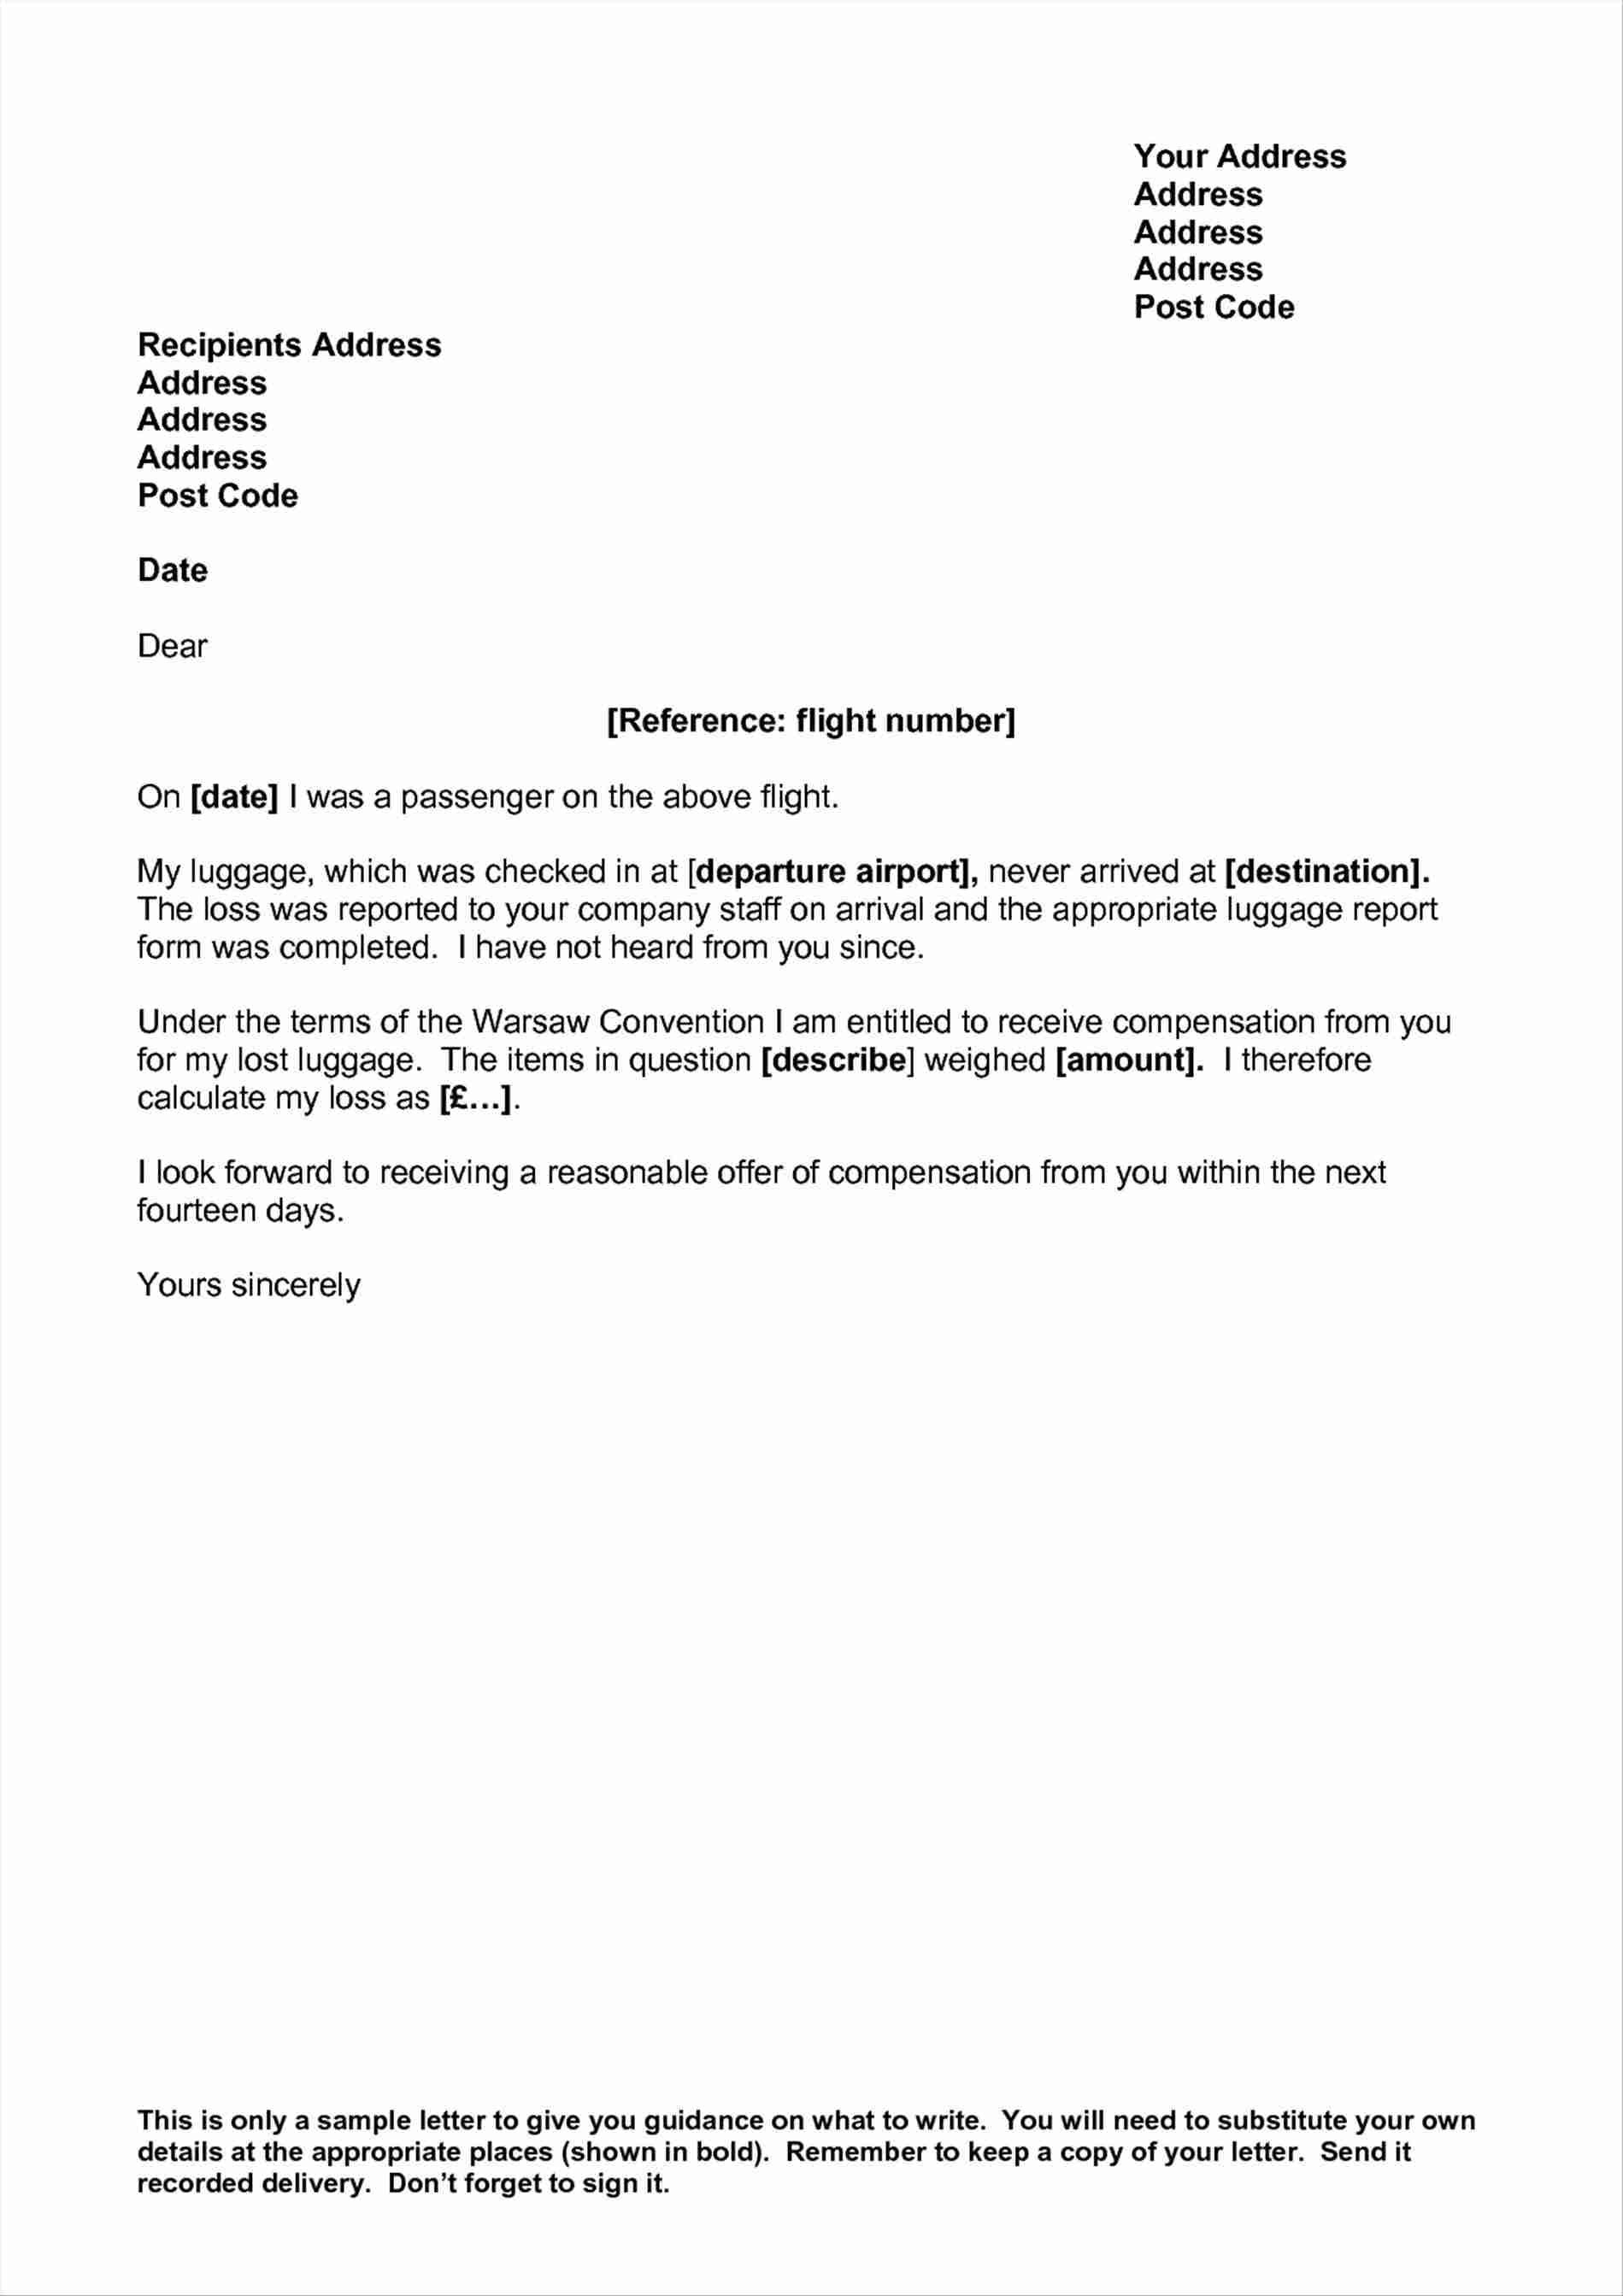 flight delay compensation letter template Collection-Professional Letter format Second Page Fresh Luggage Claim Letter Example Delay Sample Plaint Book Let Know 16-c